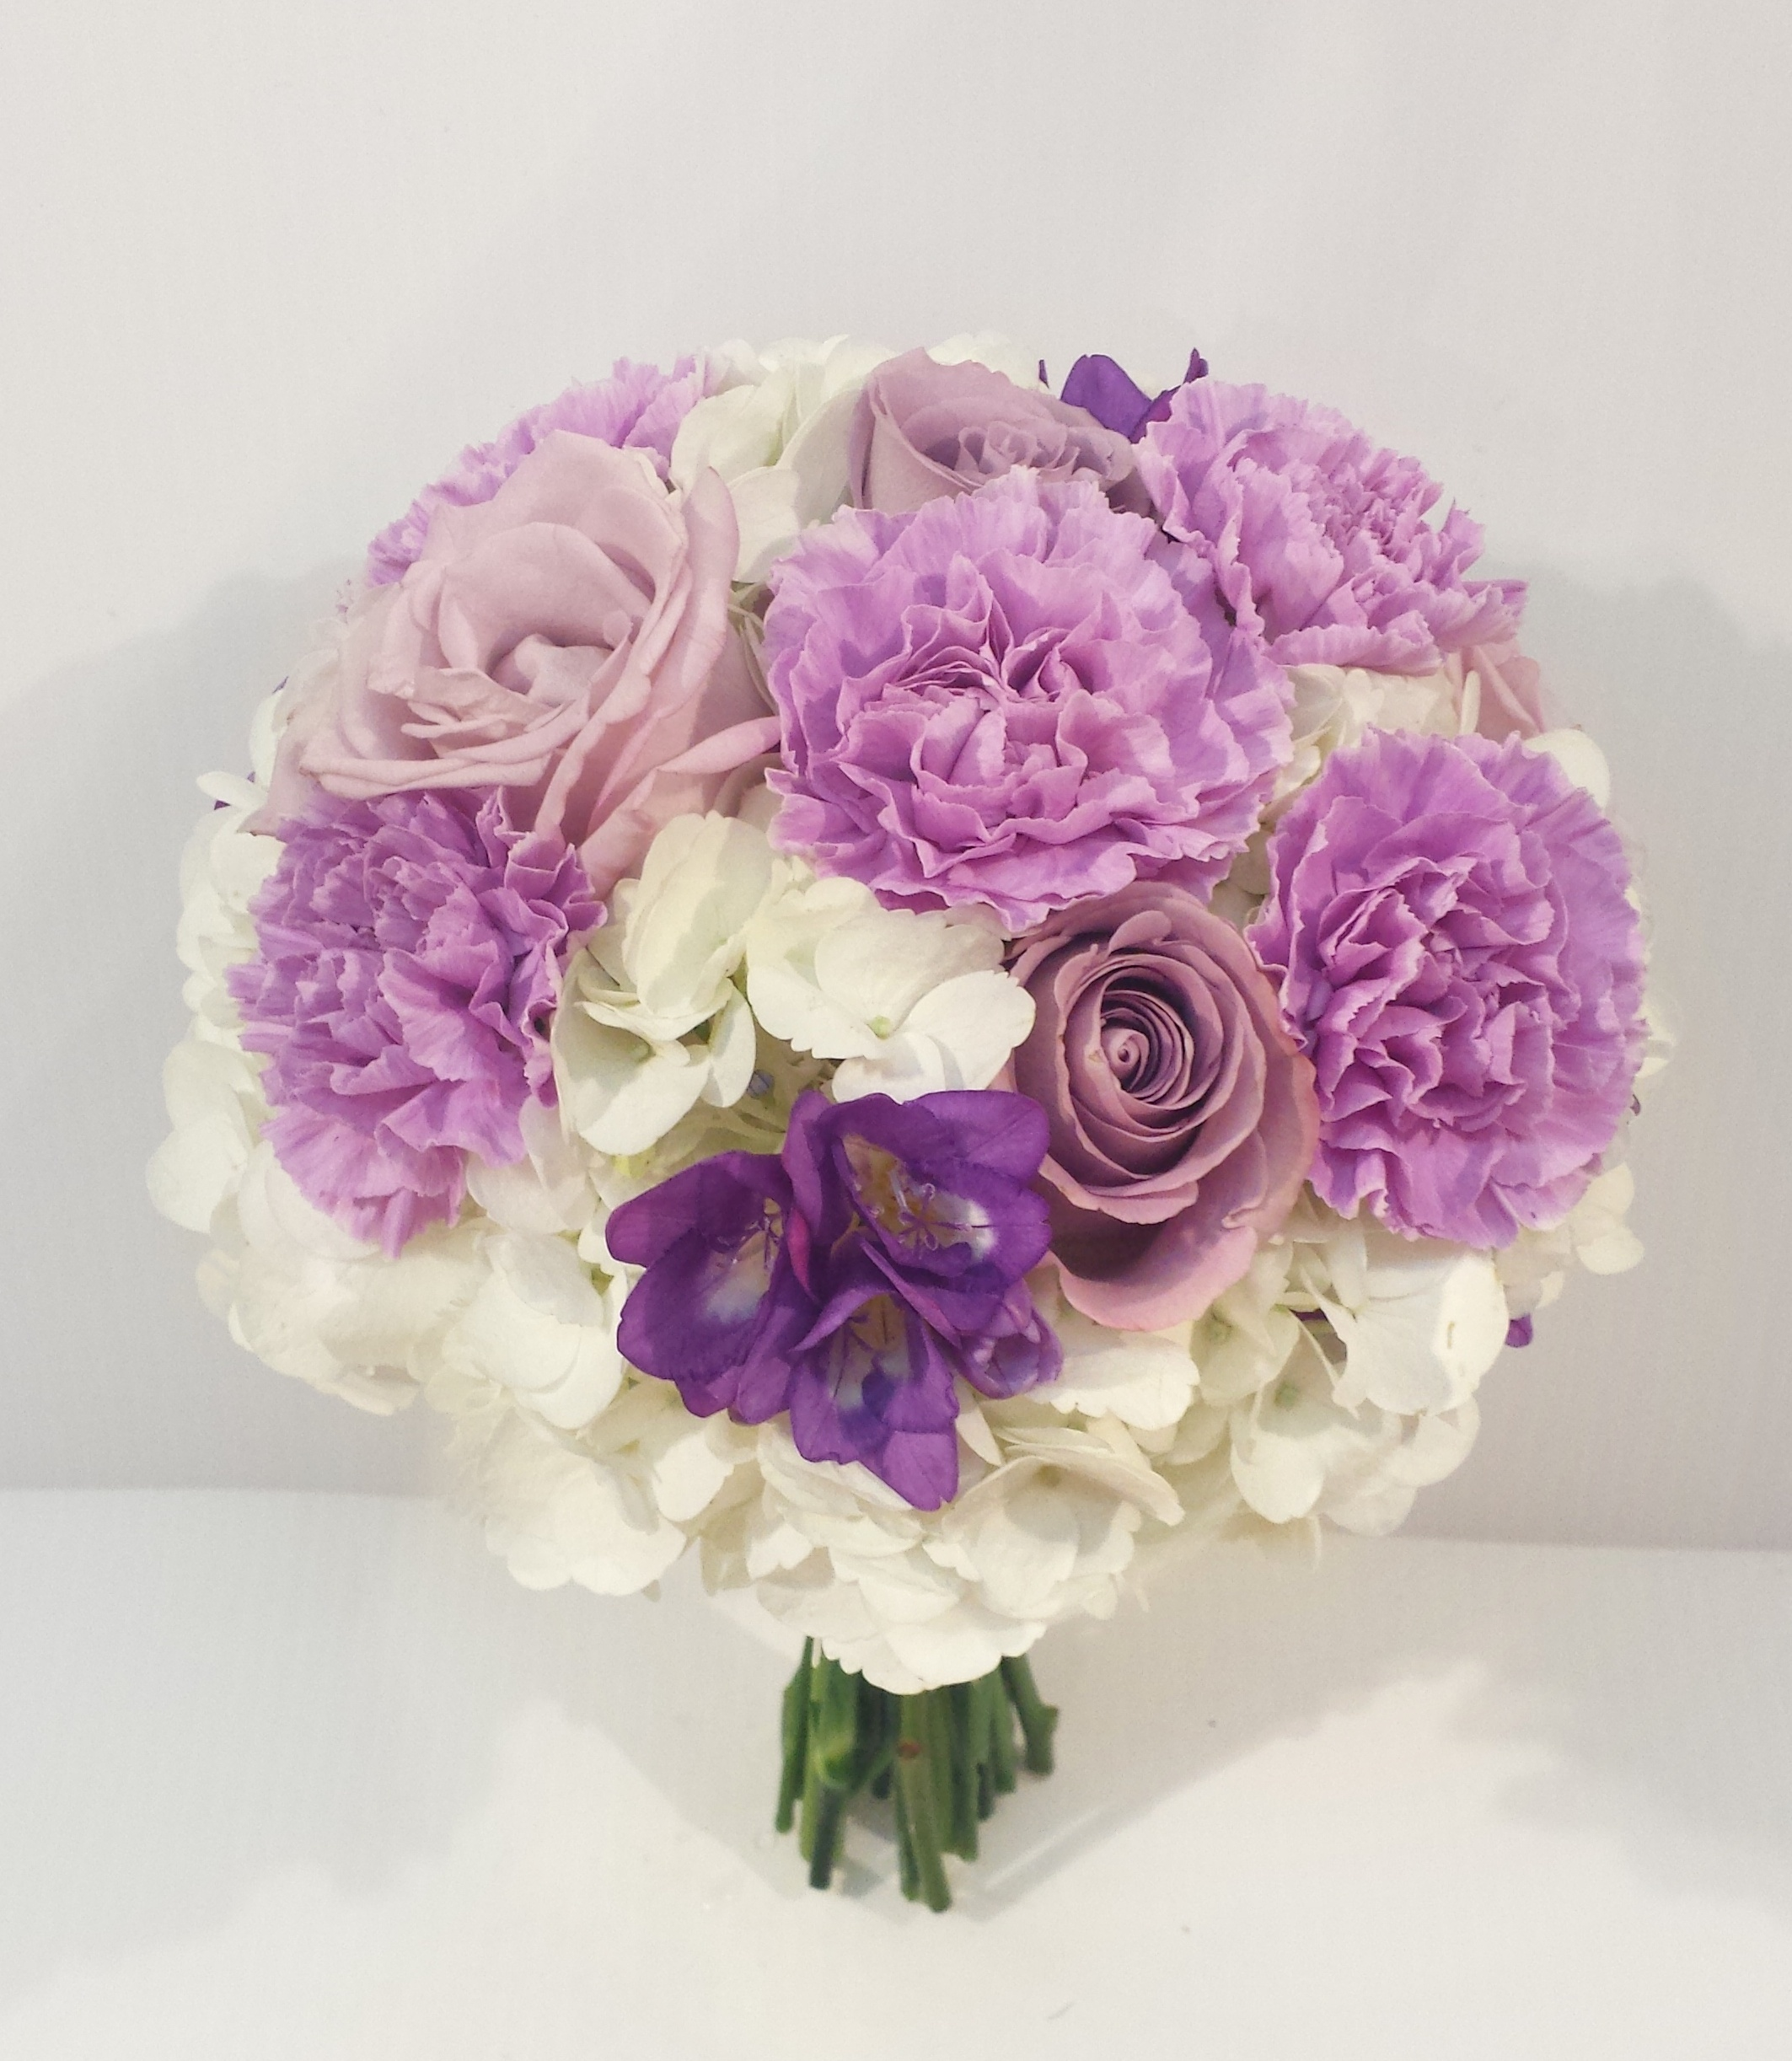 calgary wedding flowers florist dahlia floral design yyc weddings real weddings inspiration bridal bouquet wedding flowers lavender purple cream blue